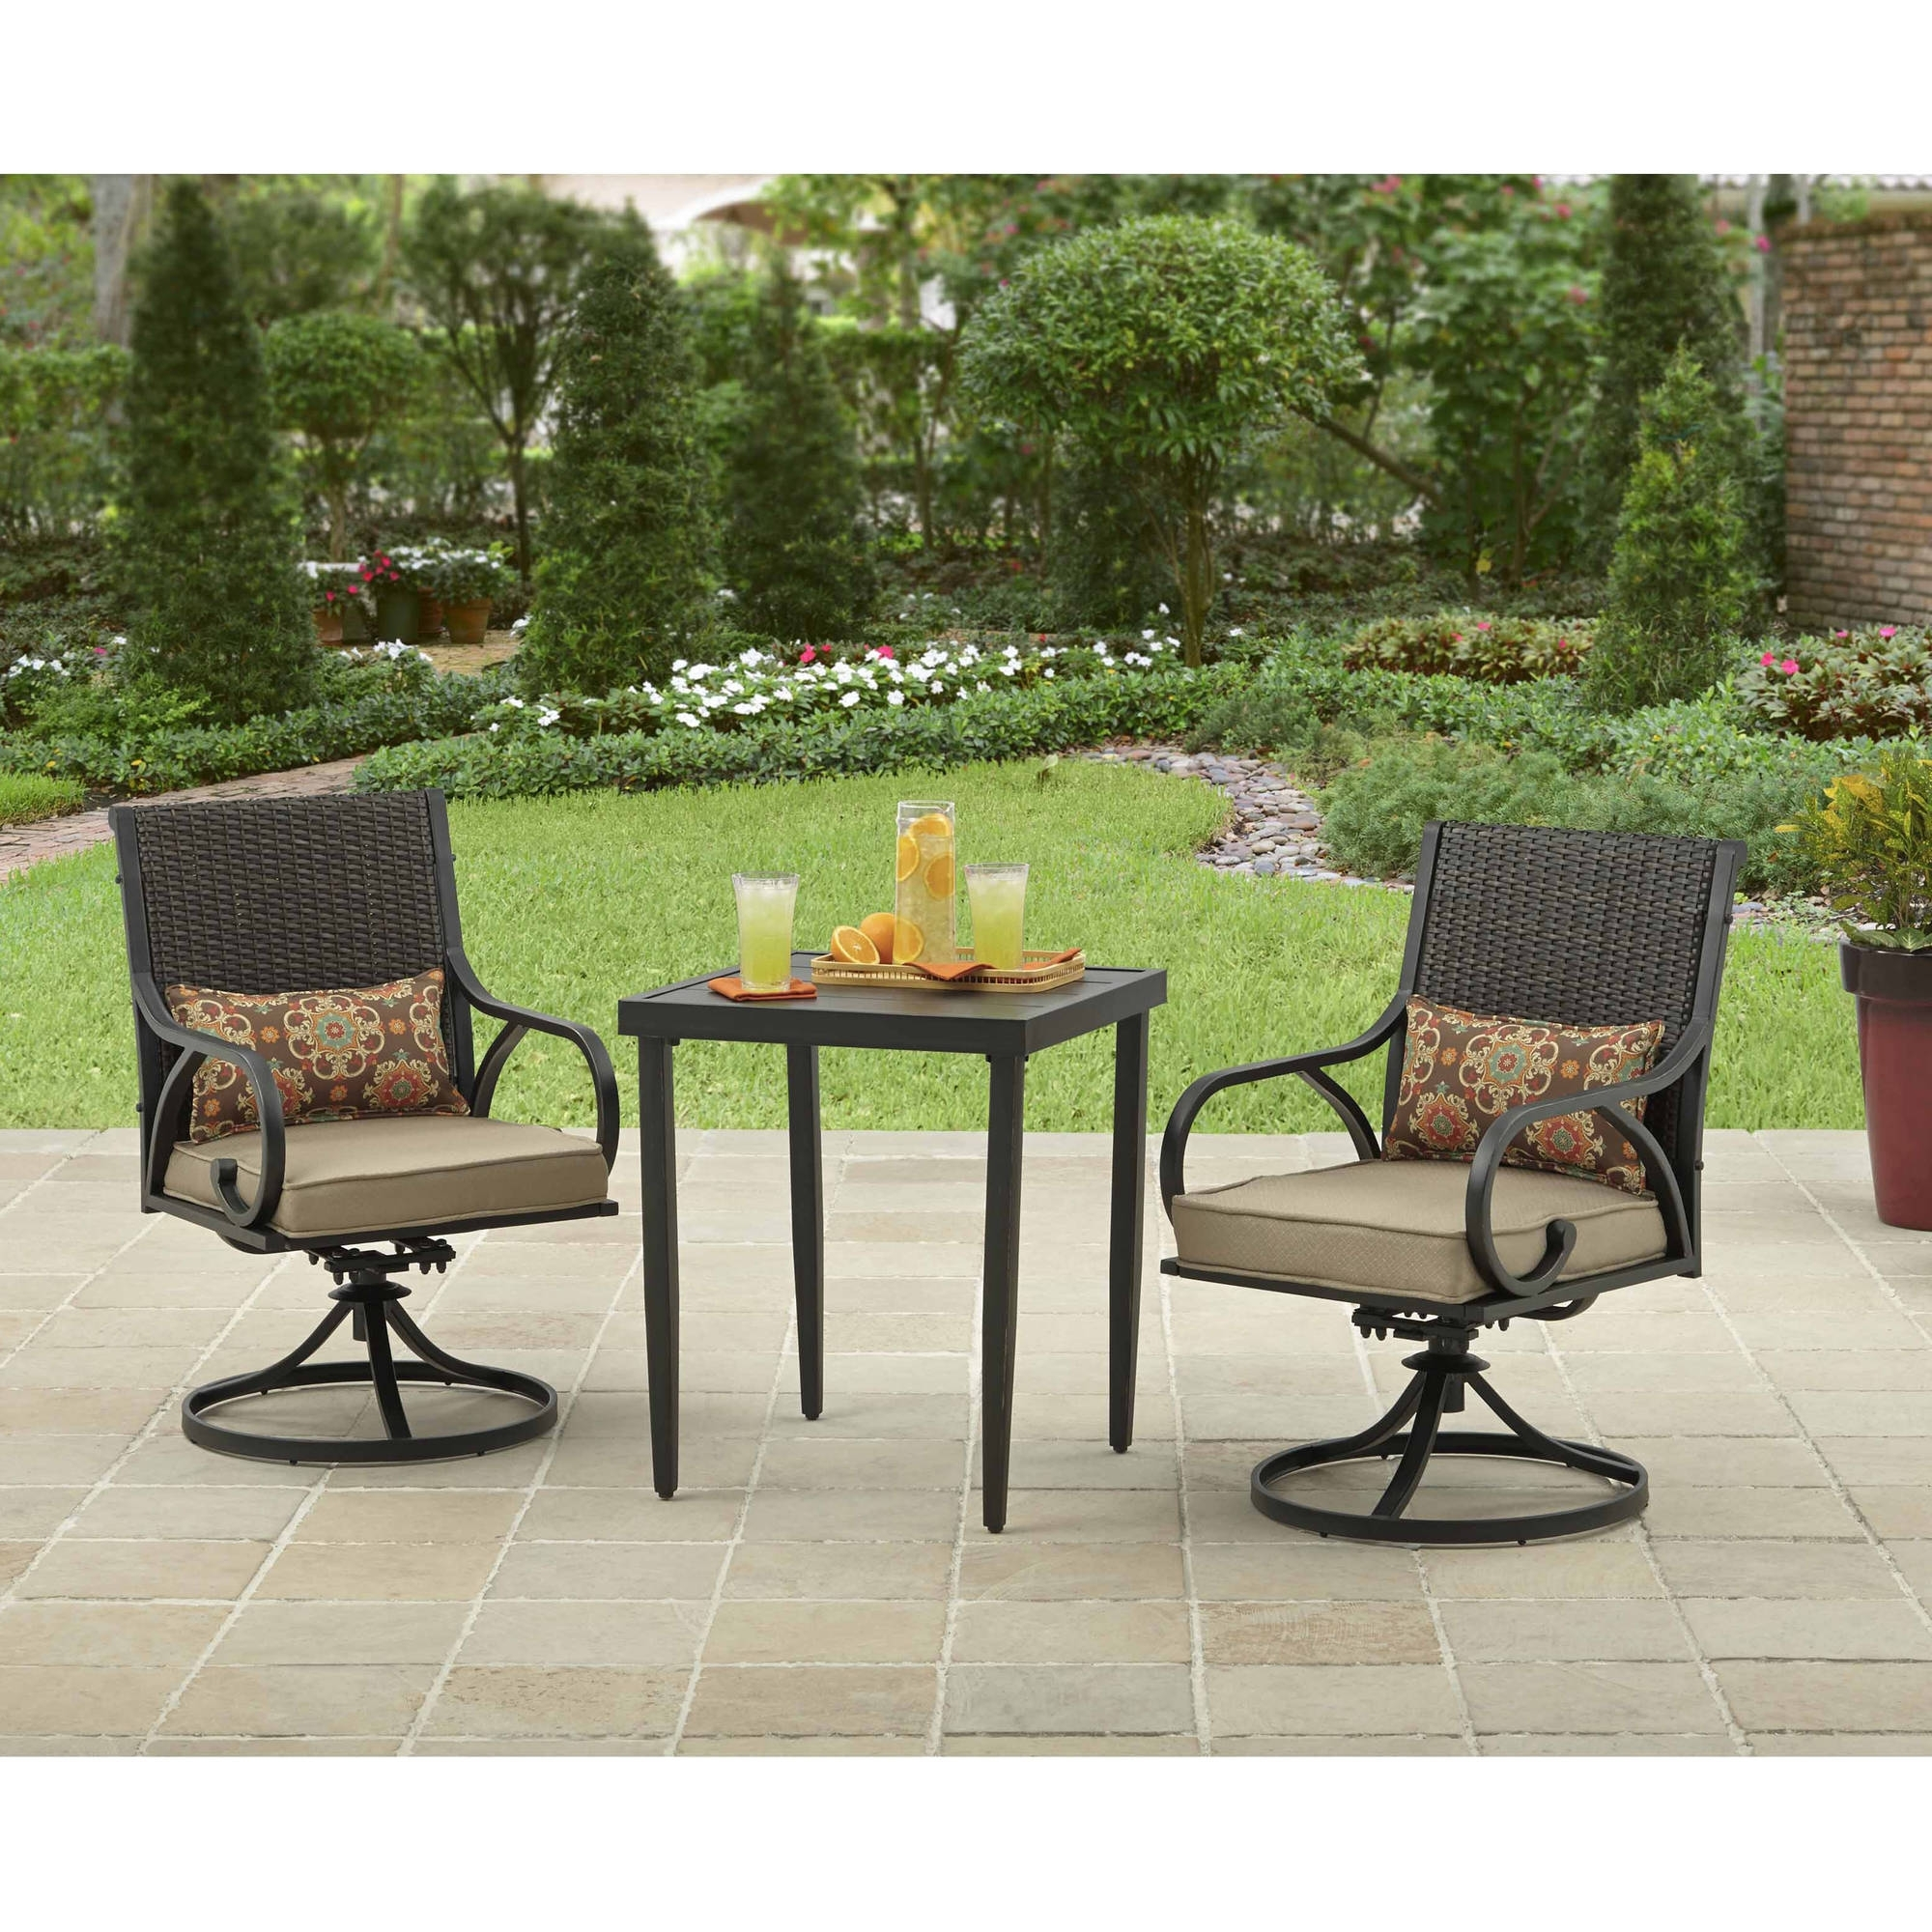 Outdoor Bistro Set 3 Piece Table & Chairs Swivel & Rocker Wicker With Regard To Current Patio Rocking Chairs And Table (View 7 of 15)